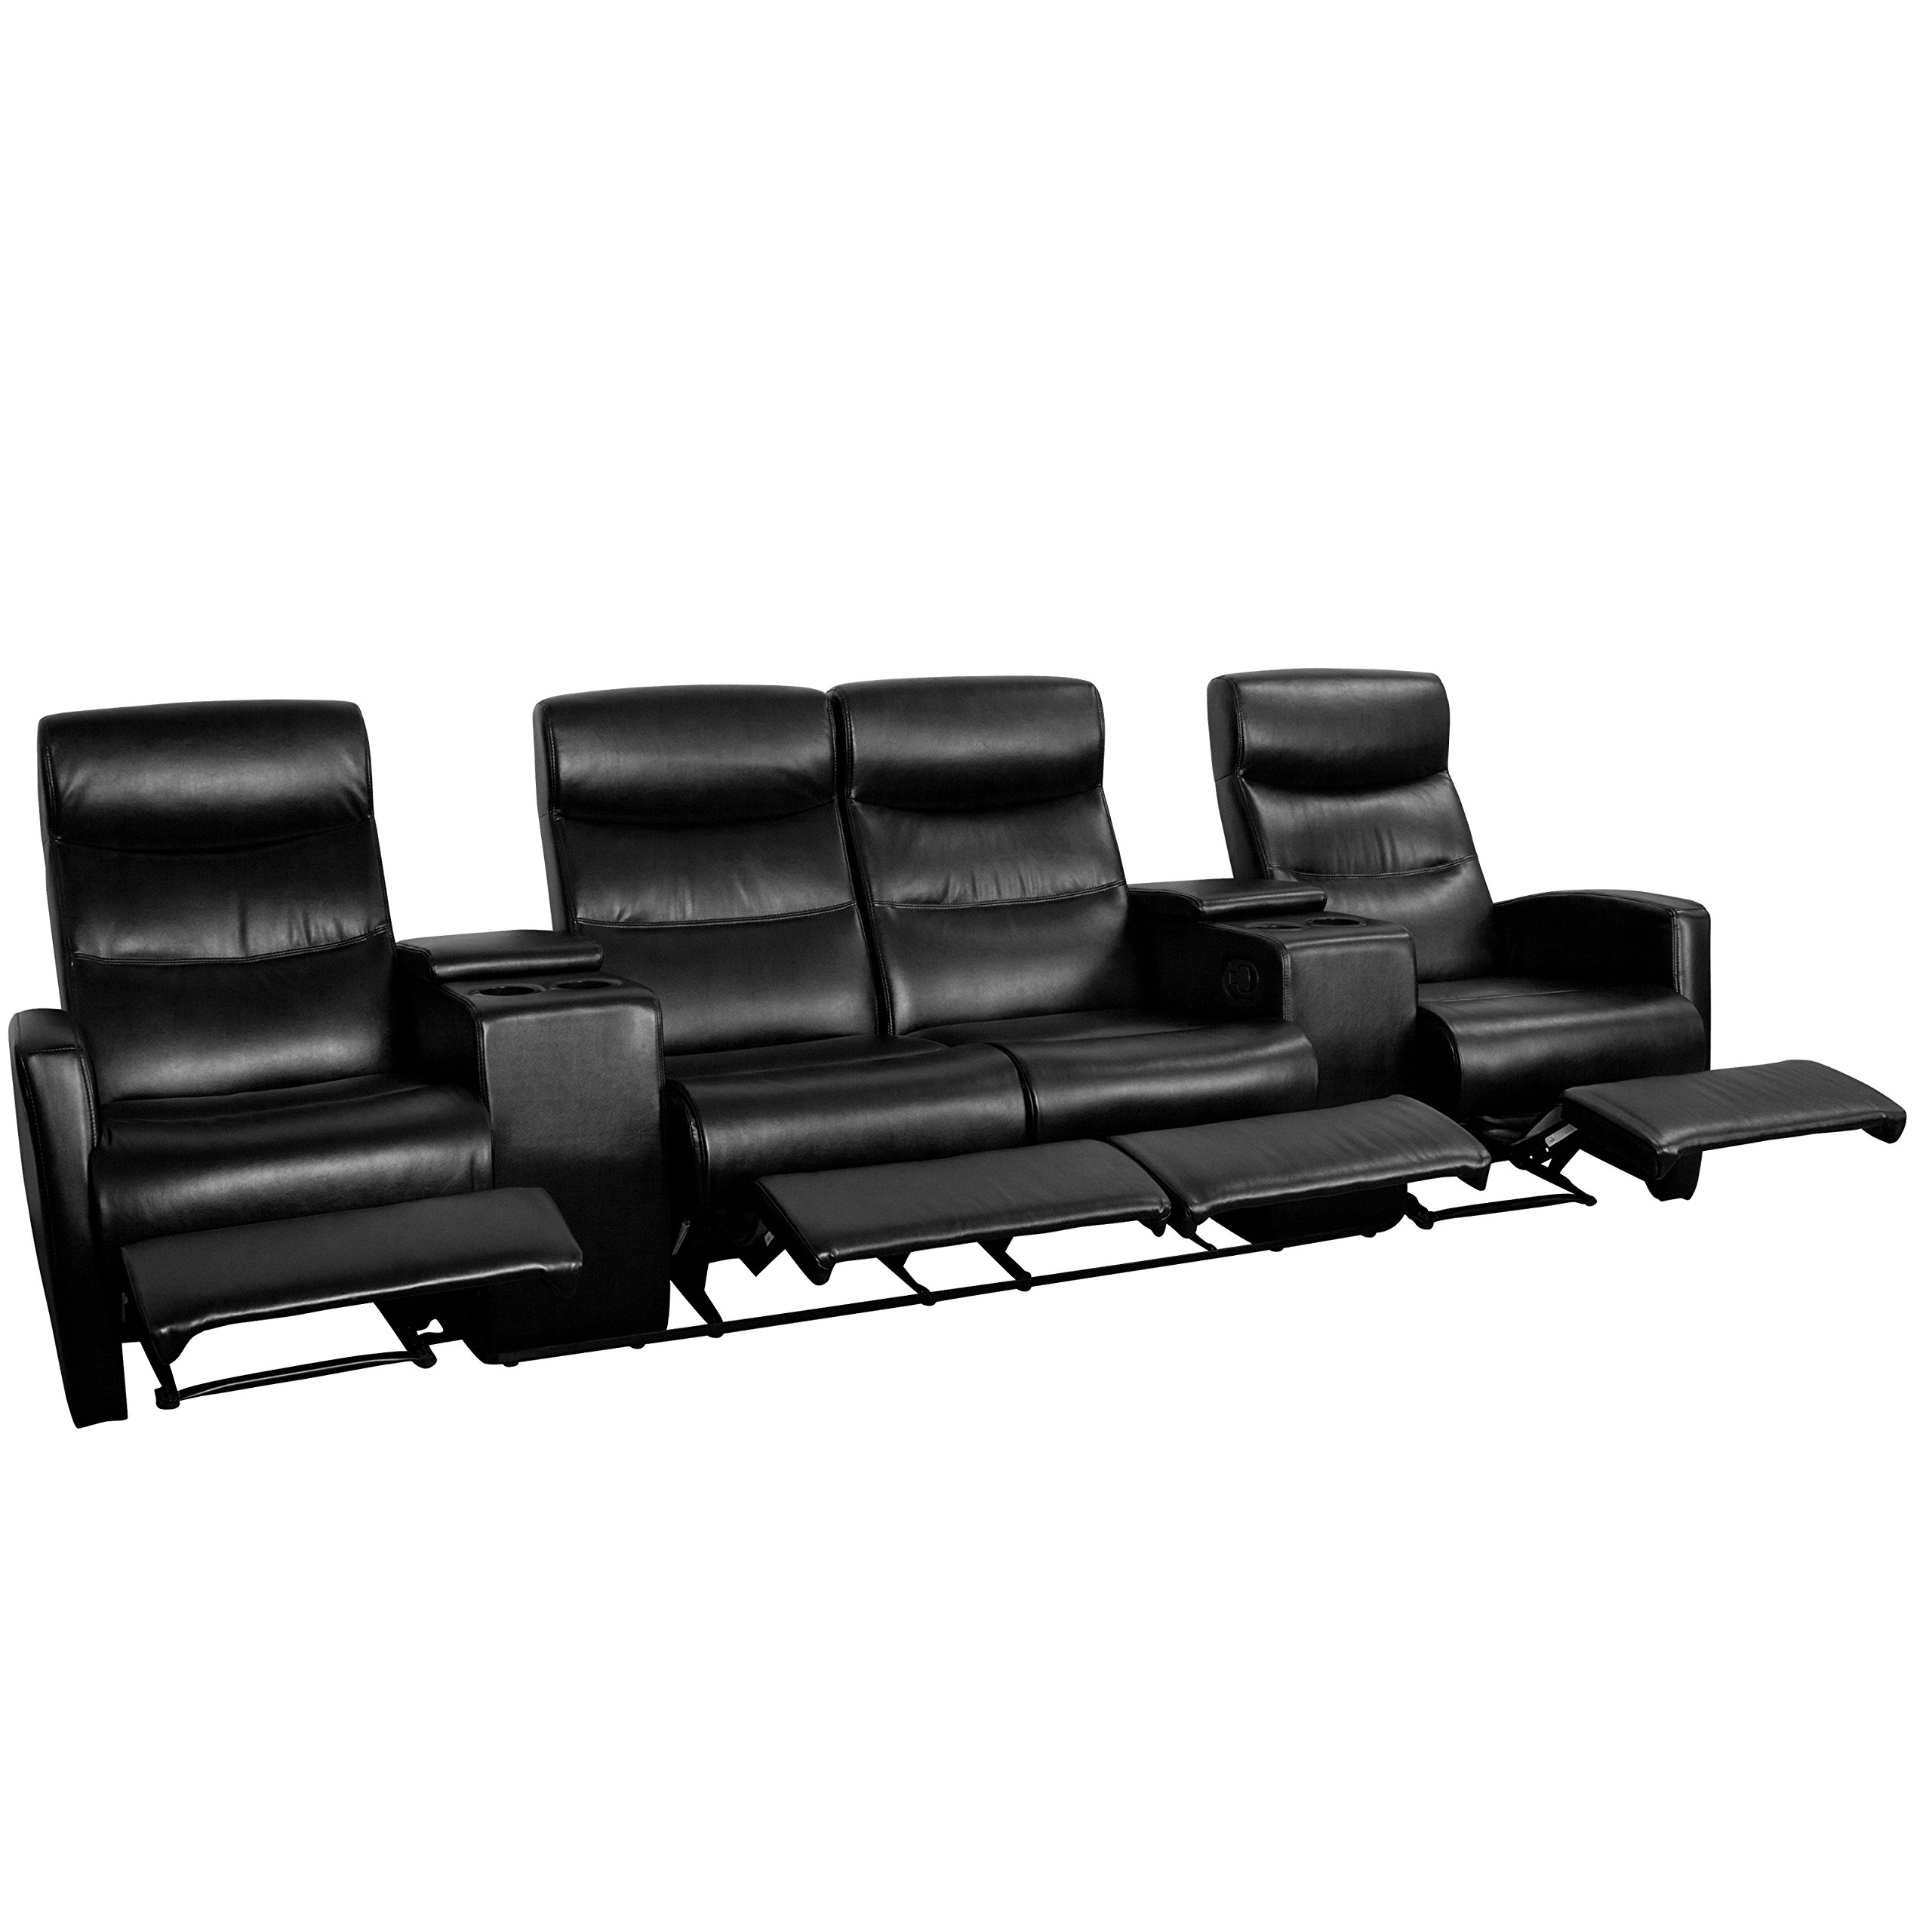 Flash Furniture Anetos Series 4-Seat Reclining Black Leather Theater Seating Unit with Cup Holders by Flash Furniture